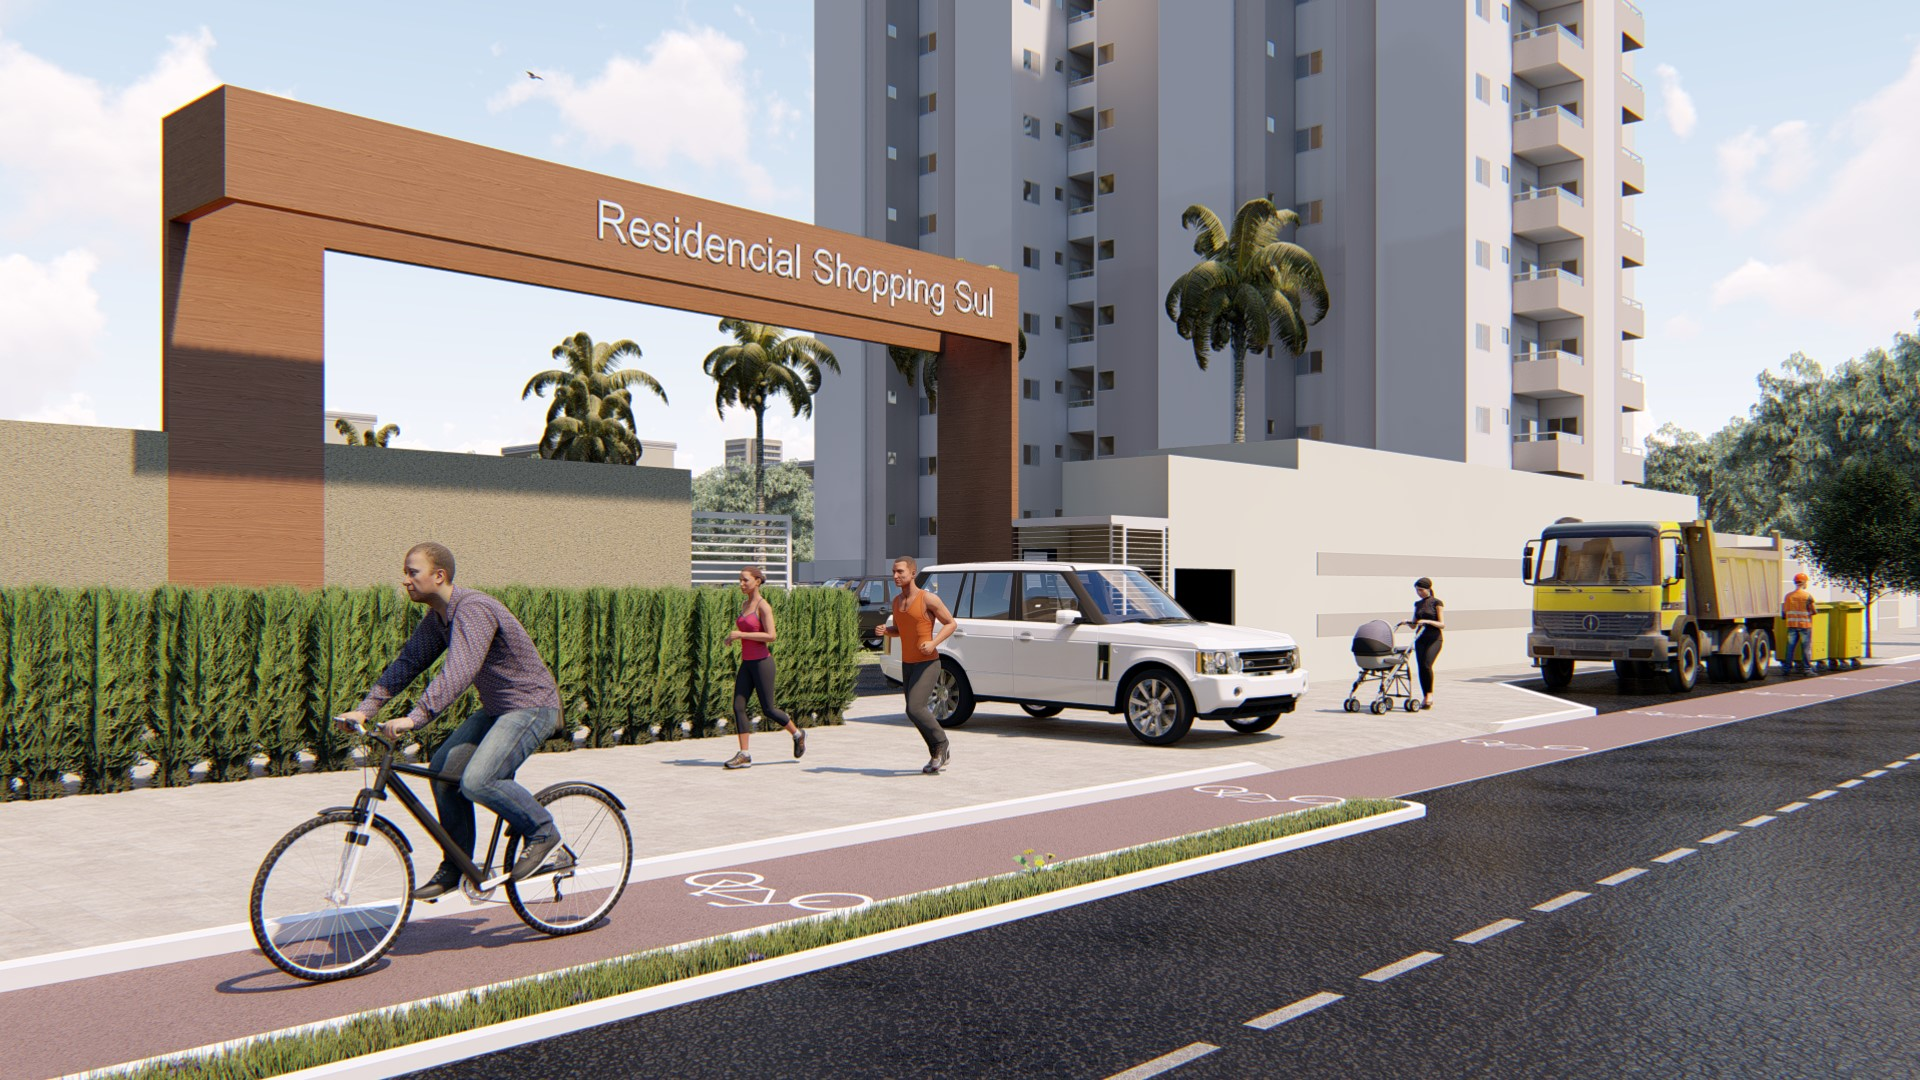 Residencial Shopping Sul